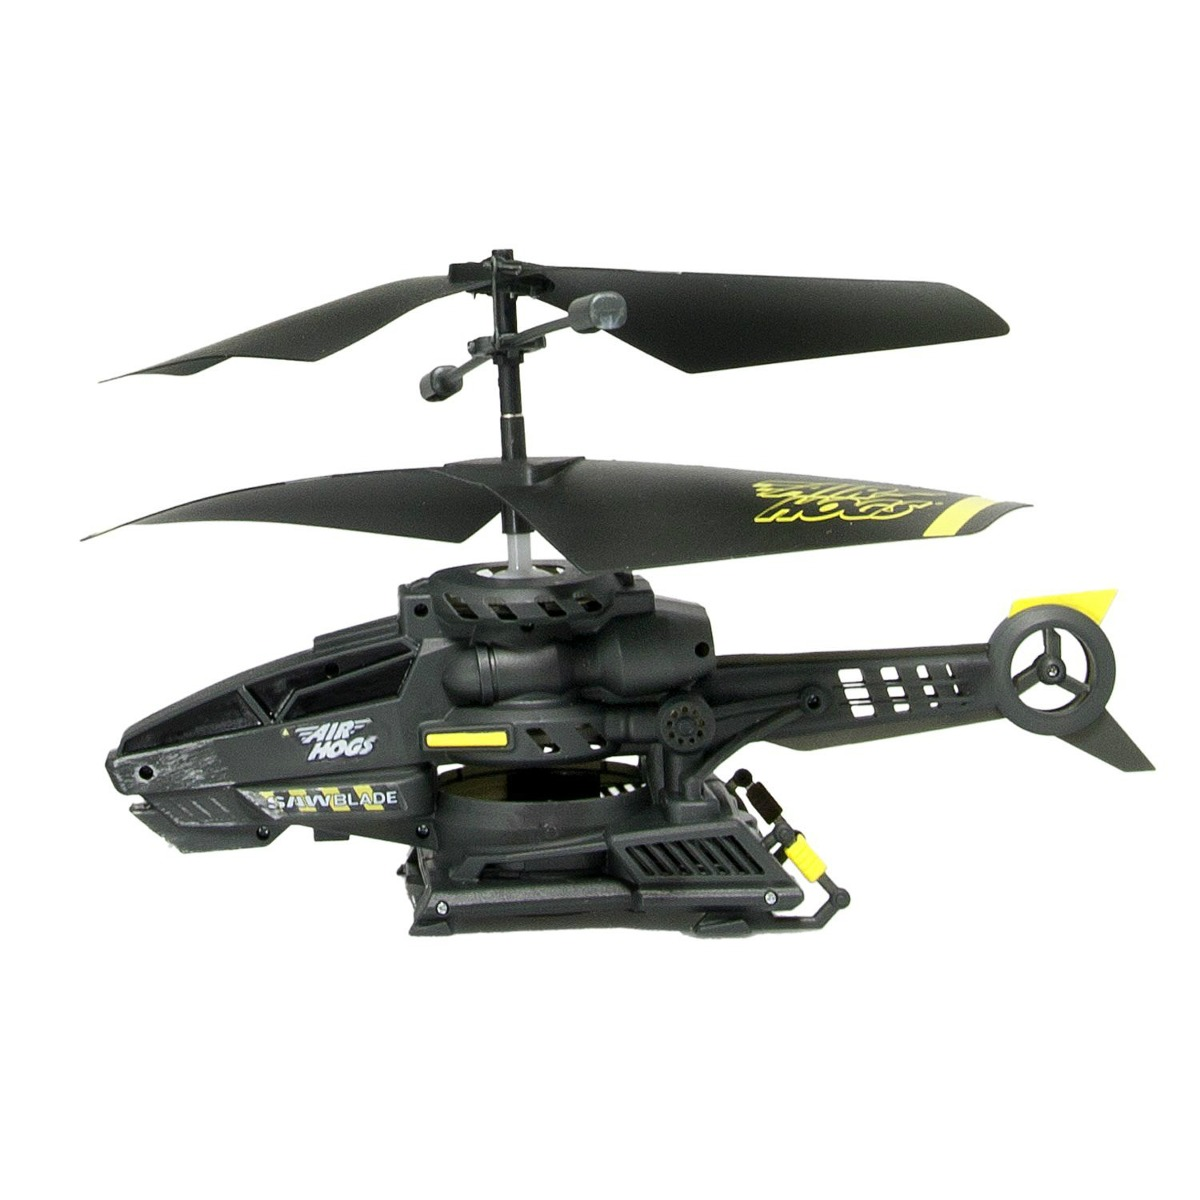 rc helicopter motherboard with Air Hogs Rc Star Wars X Wing Starfighter on Air Hogs Rc Star Wars X Wing Starfighter also 152544784549 together with 32627189829 furthermore Index moreover 253075755957.